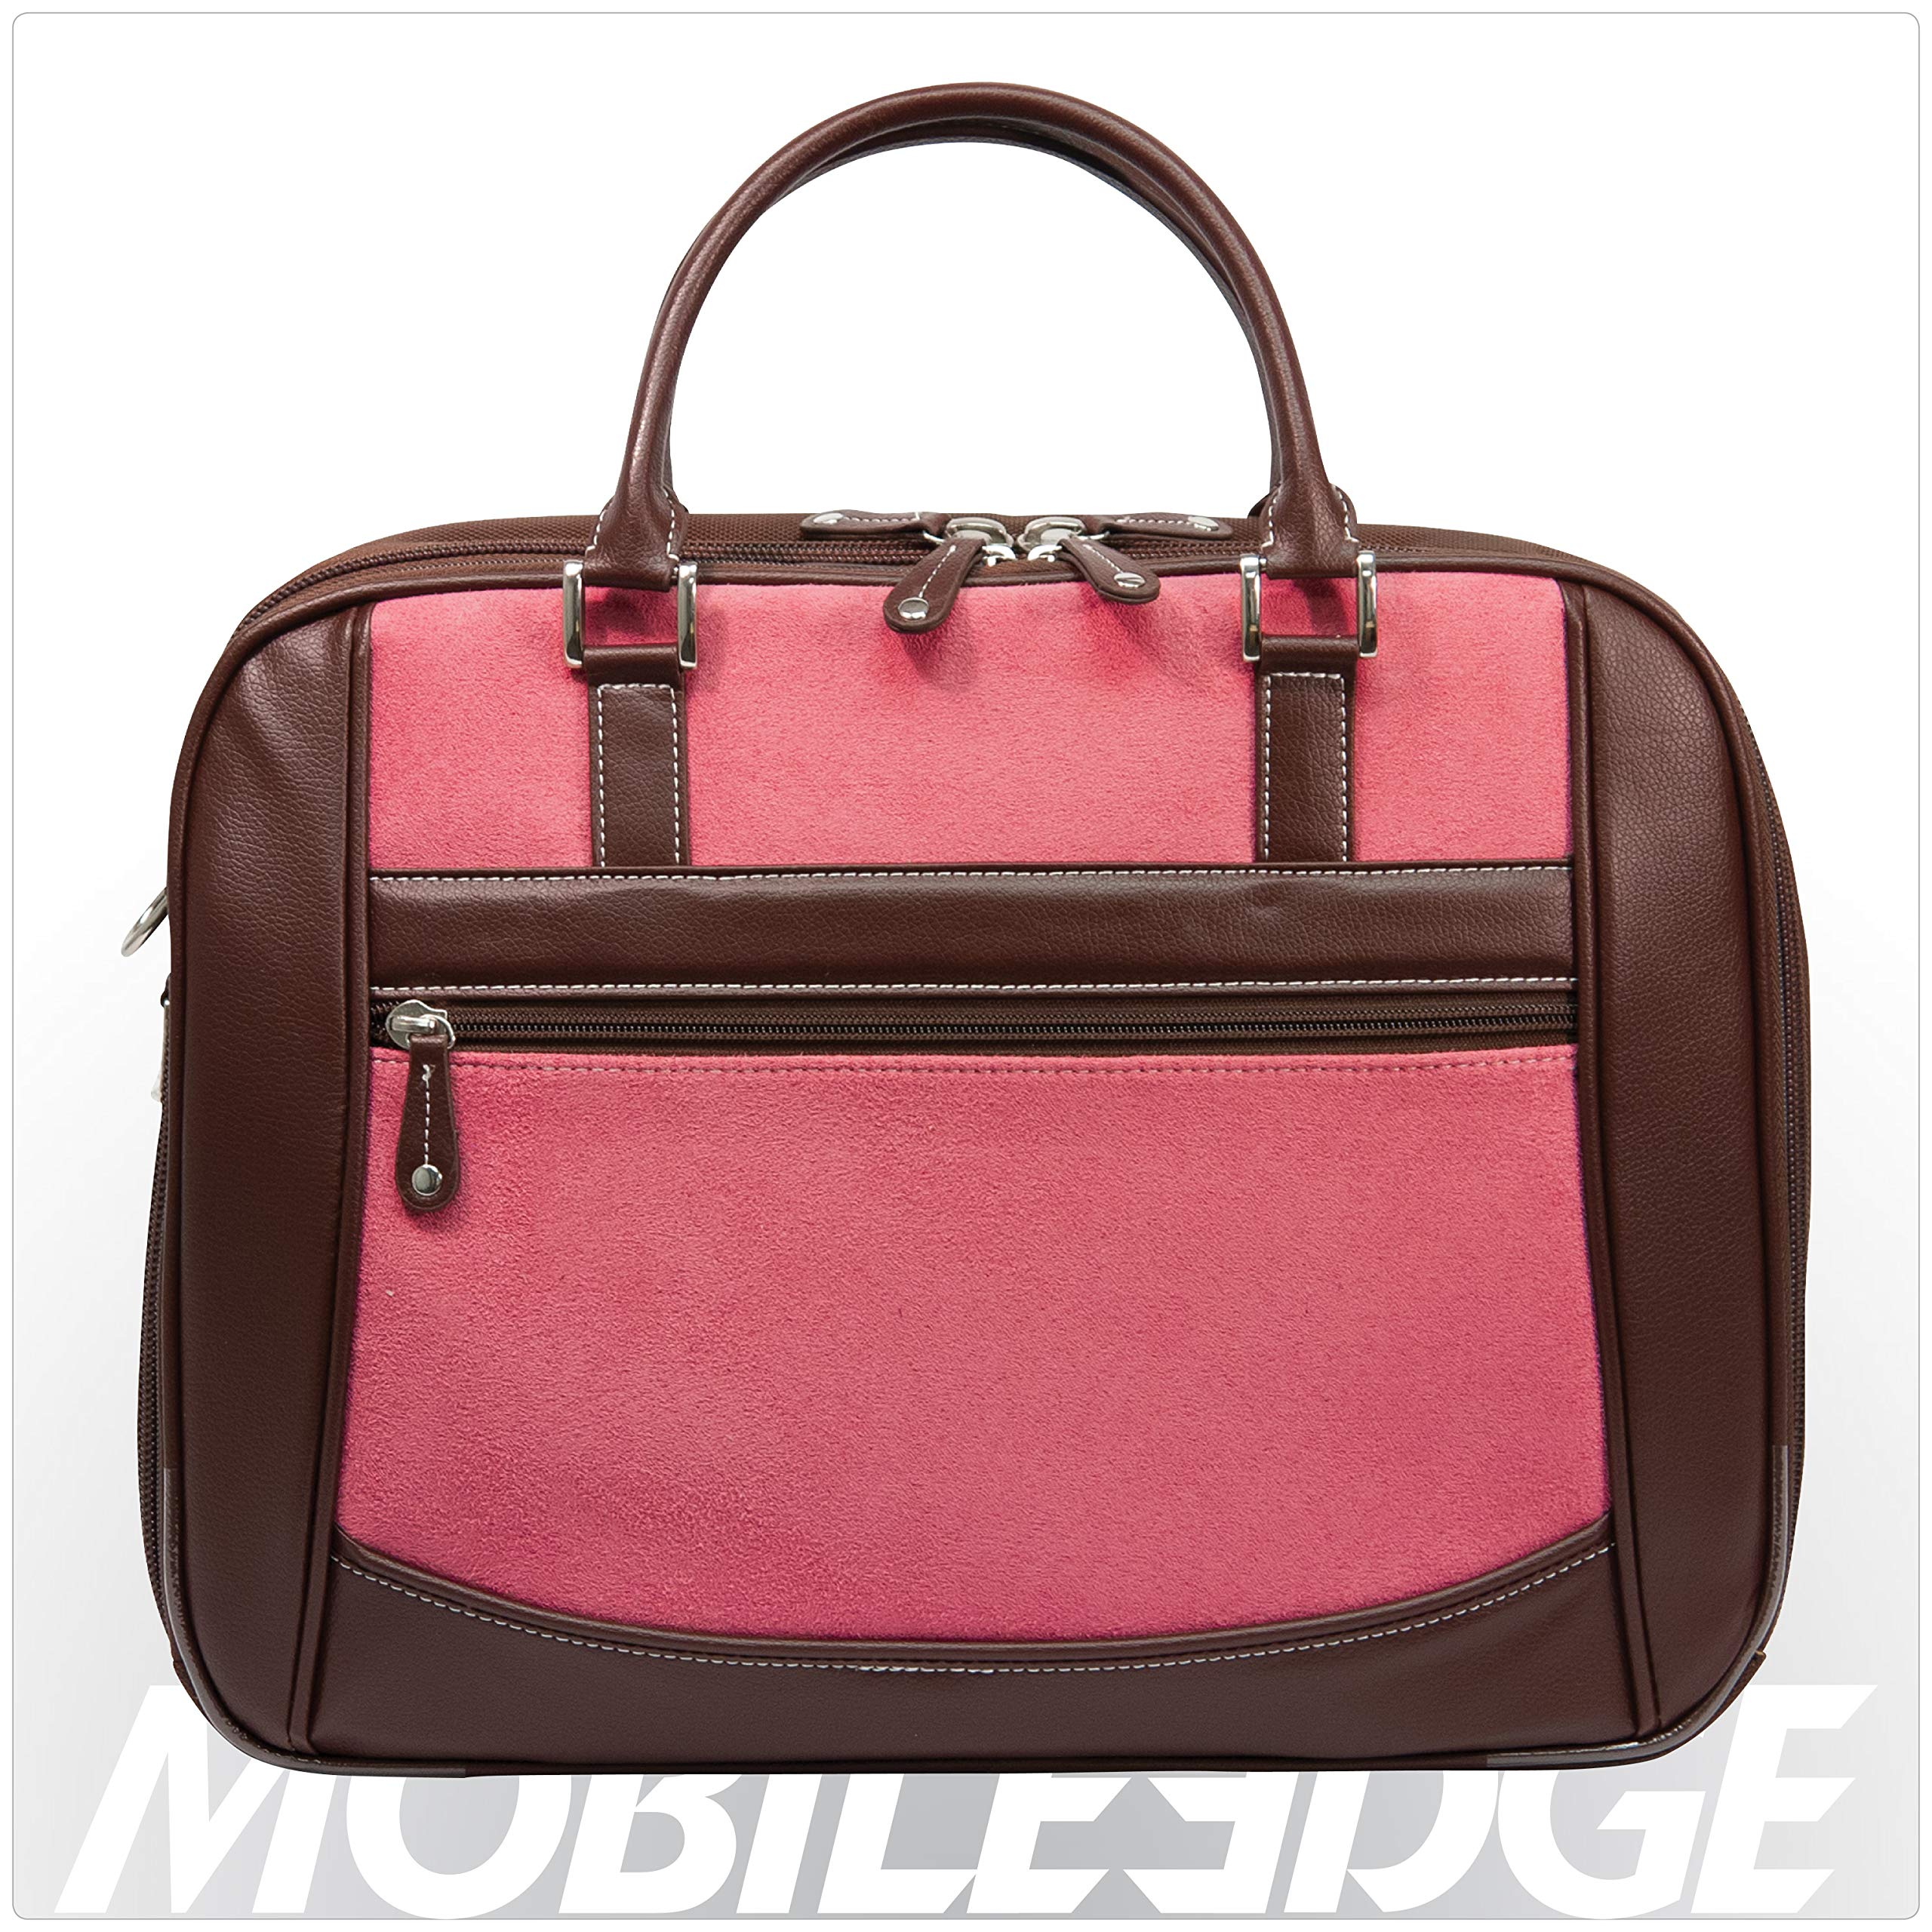 Mobile Edge Women's Black w/Pink, Checkpoint Friendly Element Laptop Briefcase 16 Inch PC, 17 Inch MacBook, Business, Travel MESFEBX by Mobile Edge (Image #1)